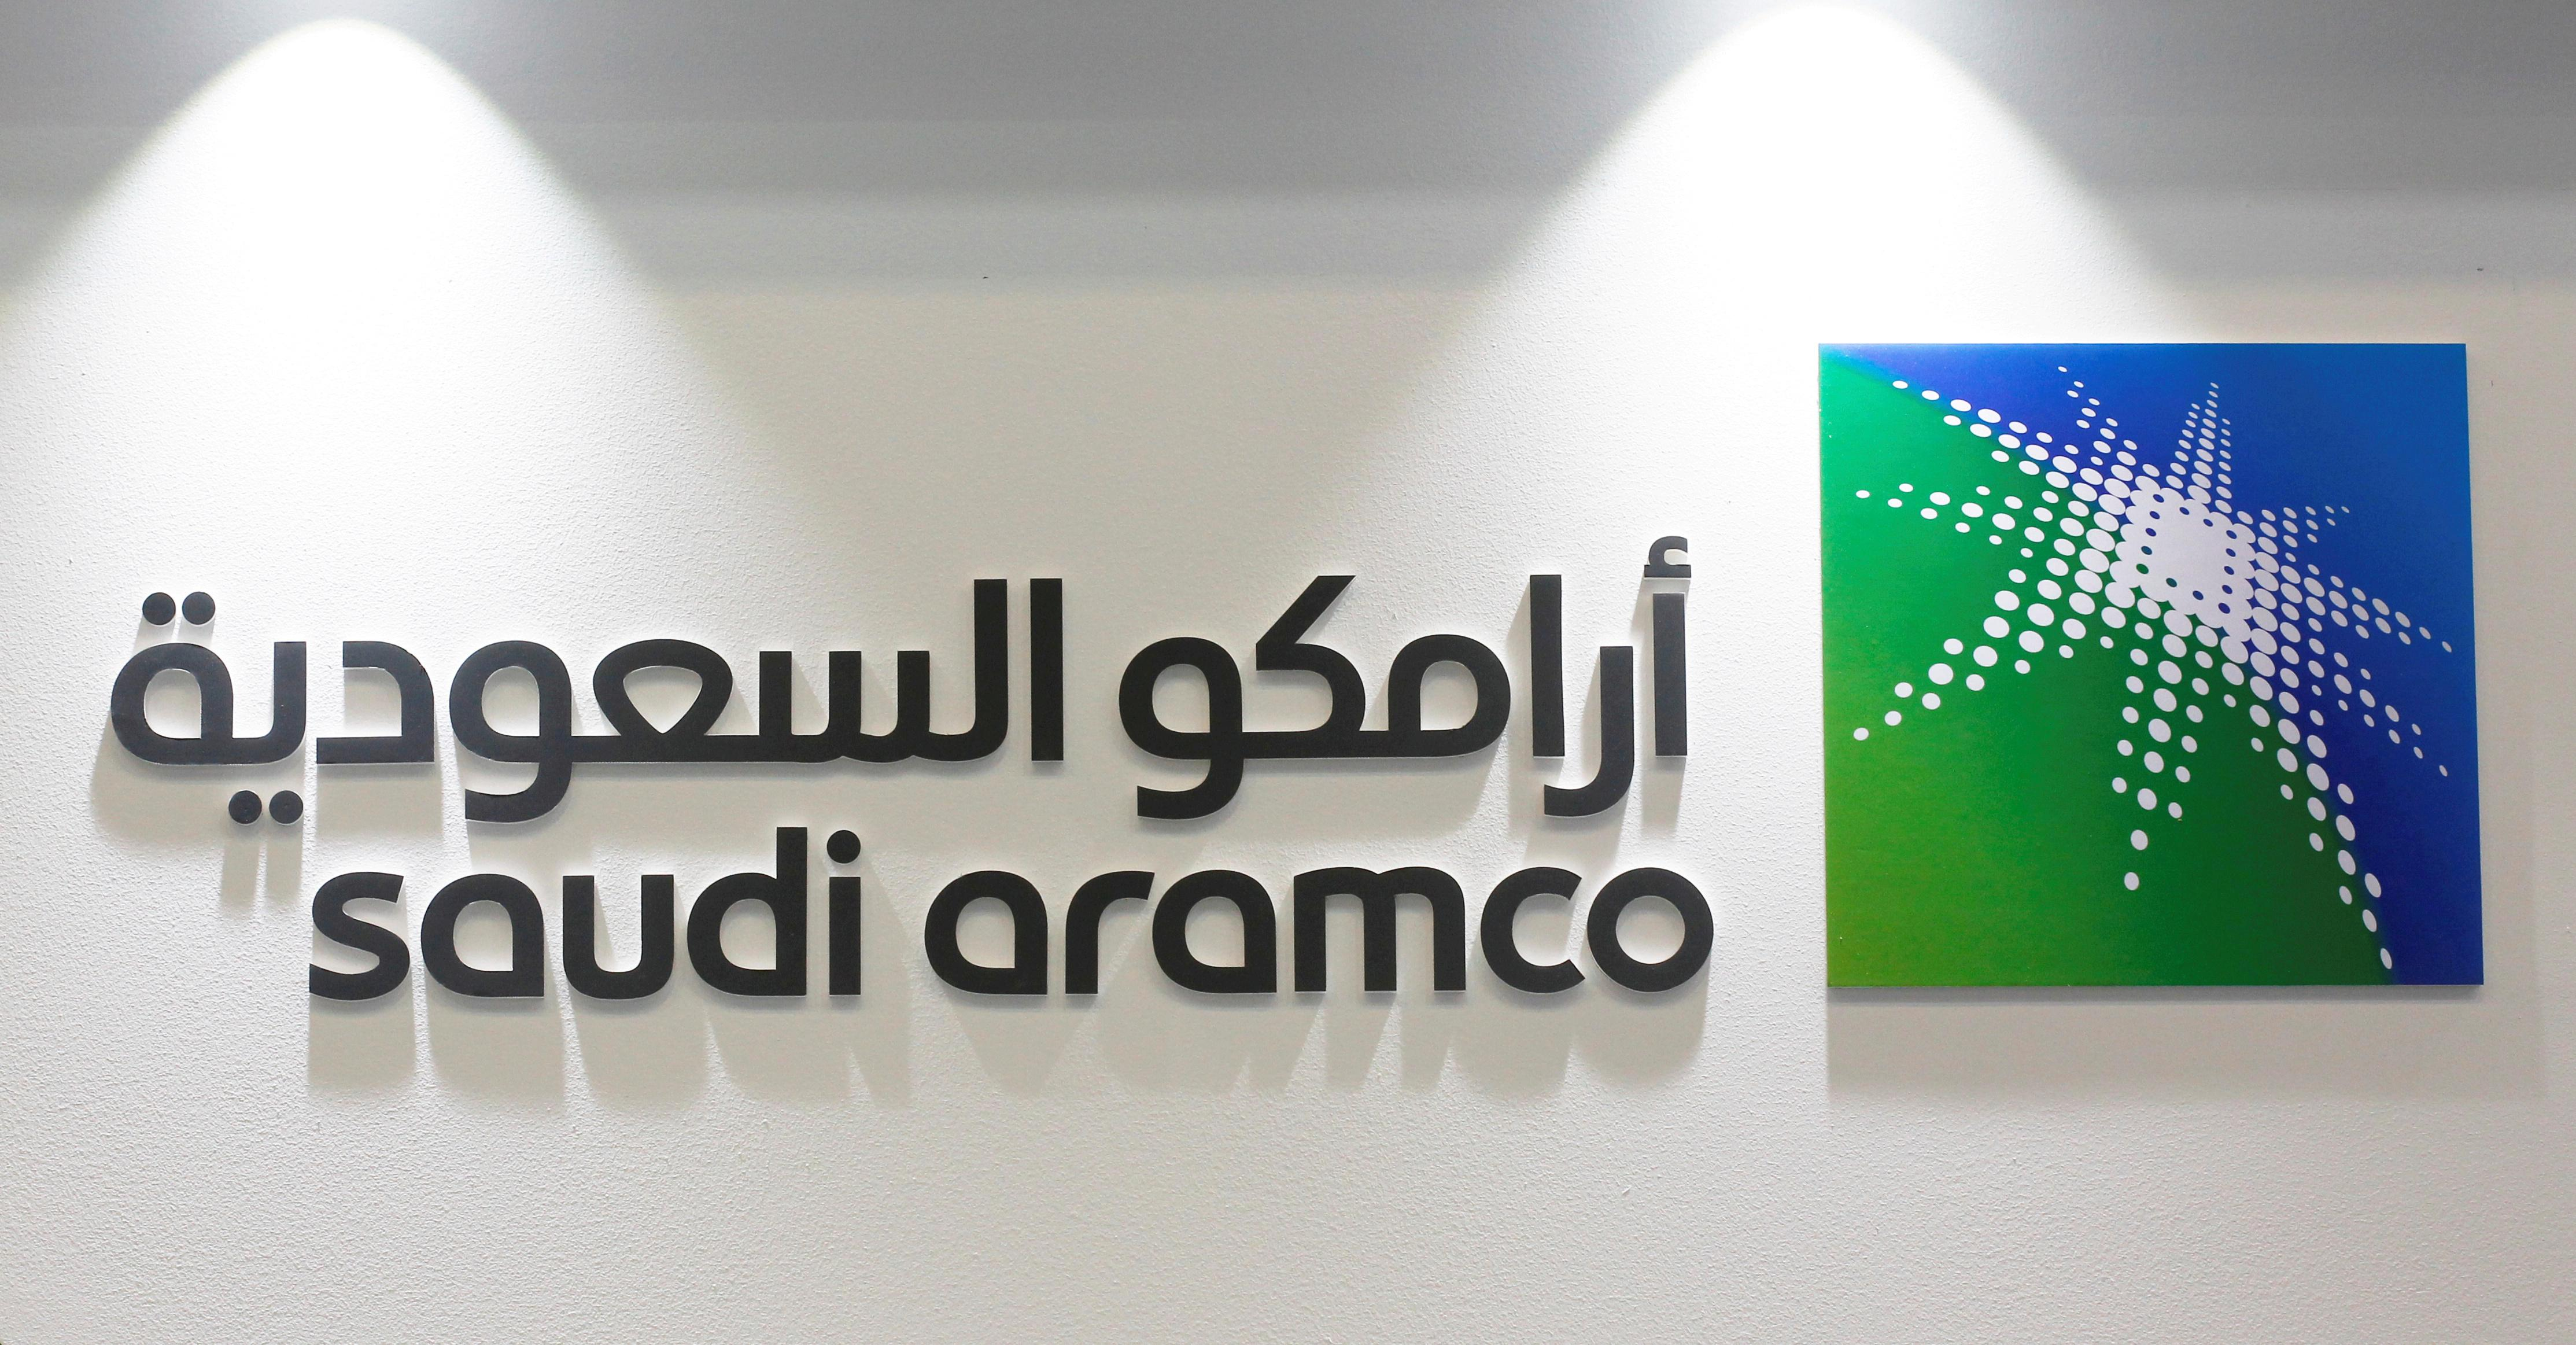 Aramco ipo investment bank